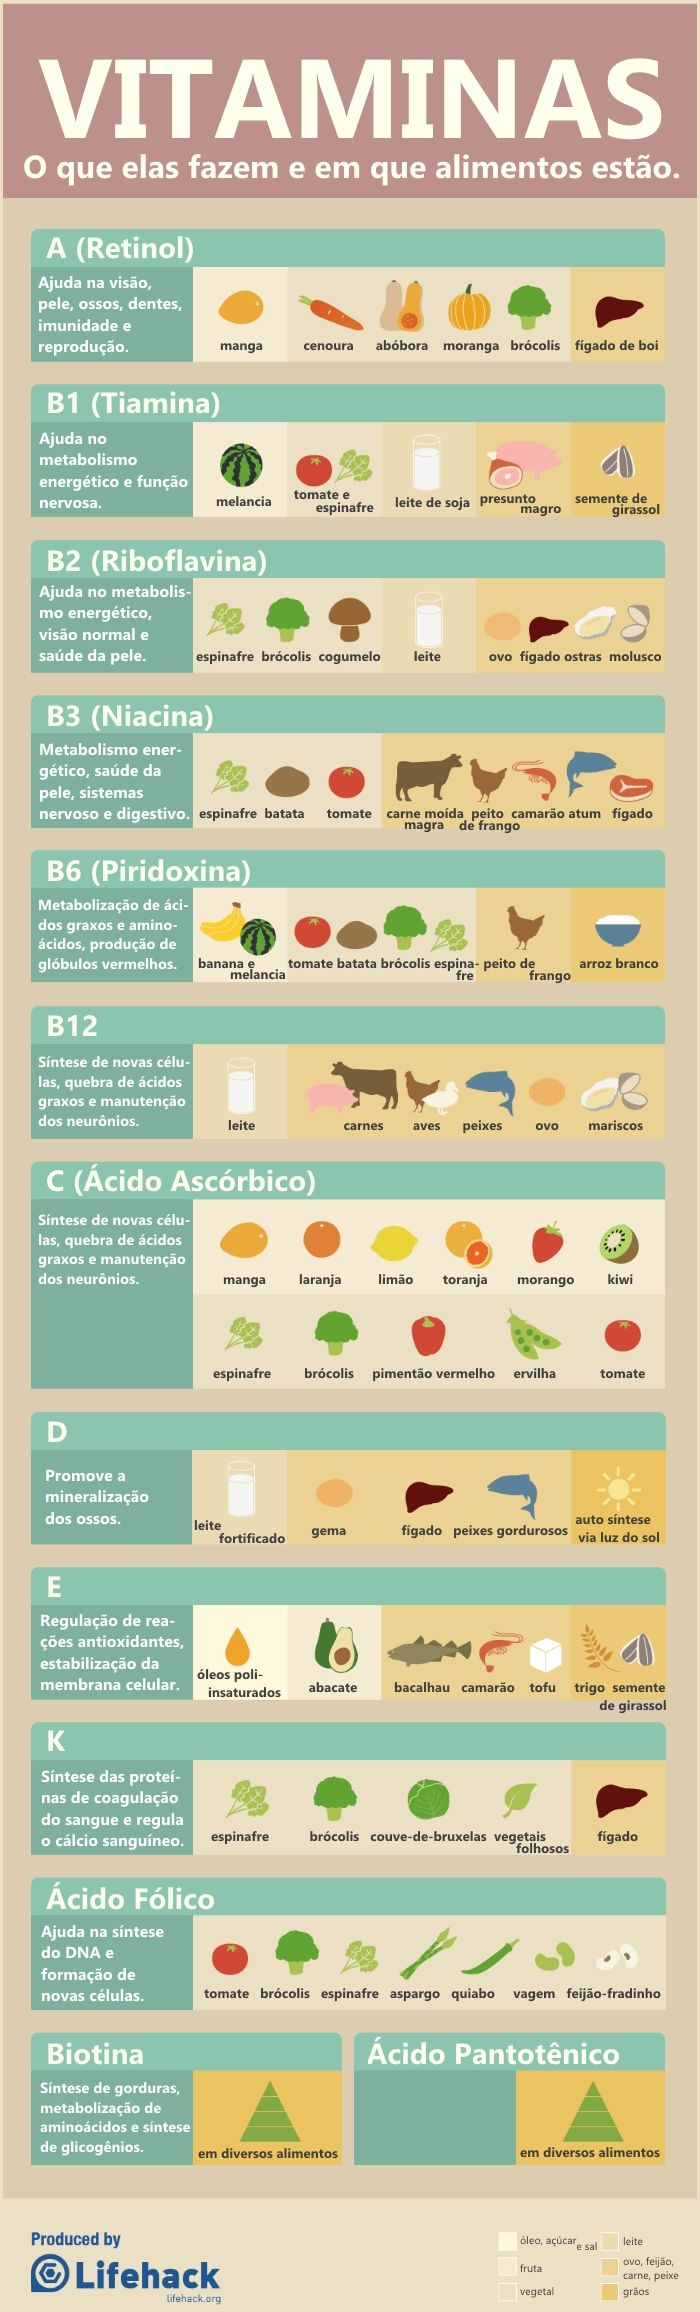 Informacao Importante Onde Encontrar Todas As Vitaminas Com